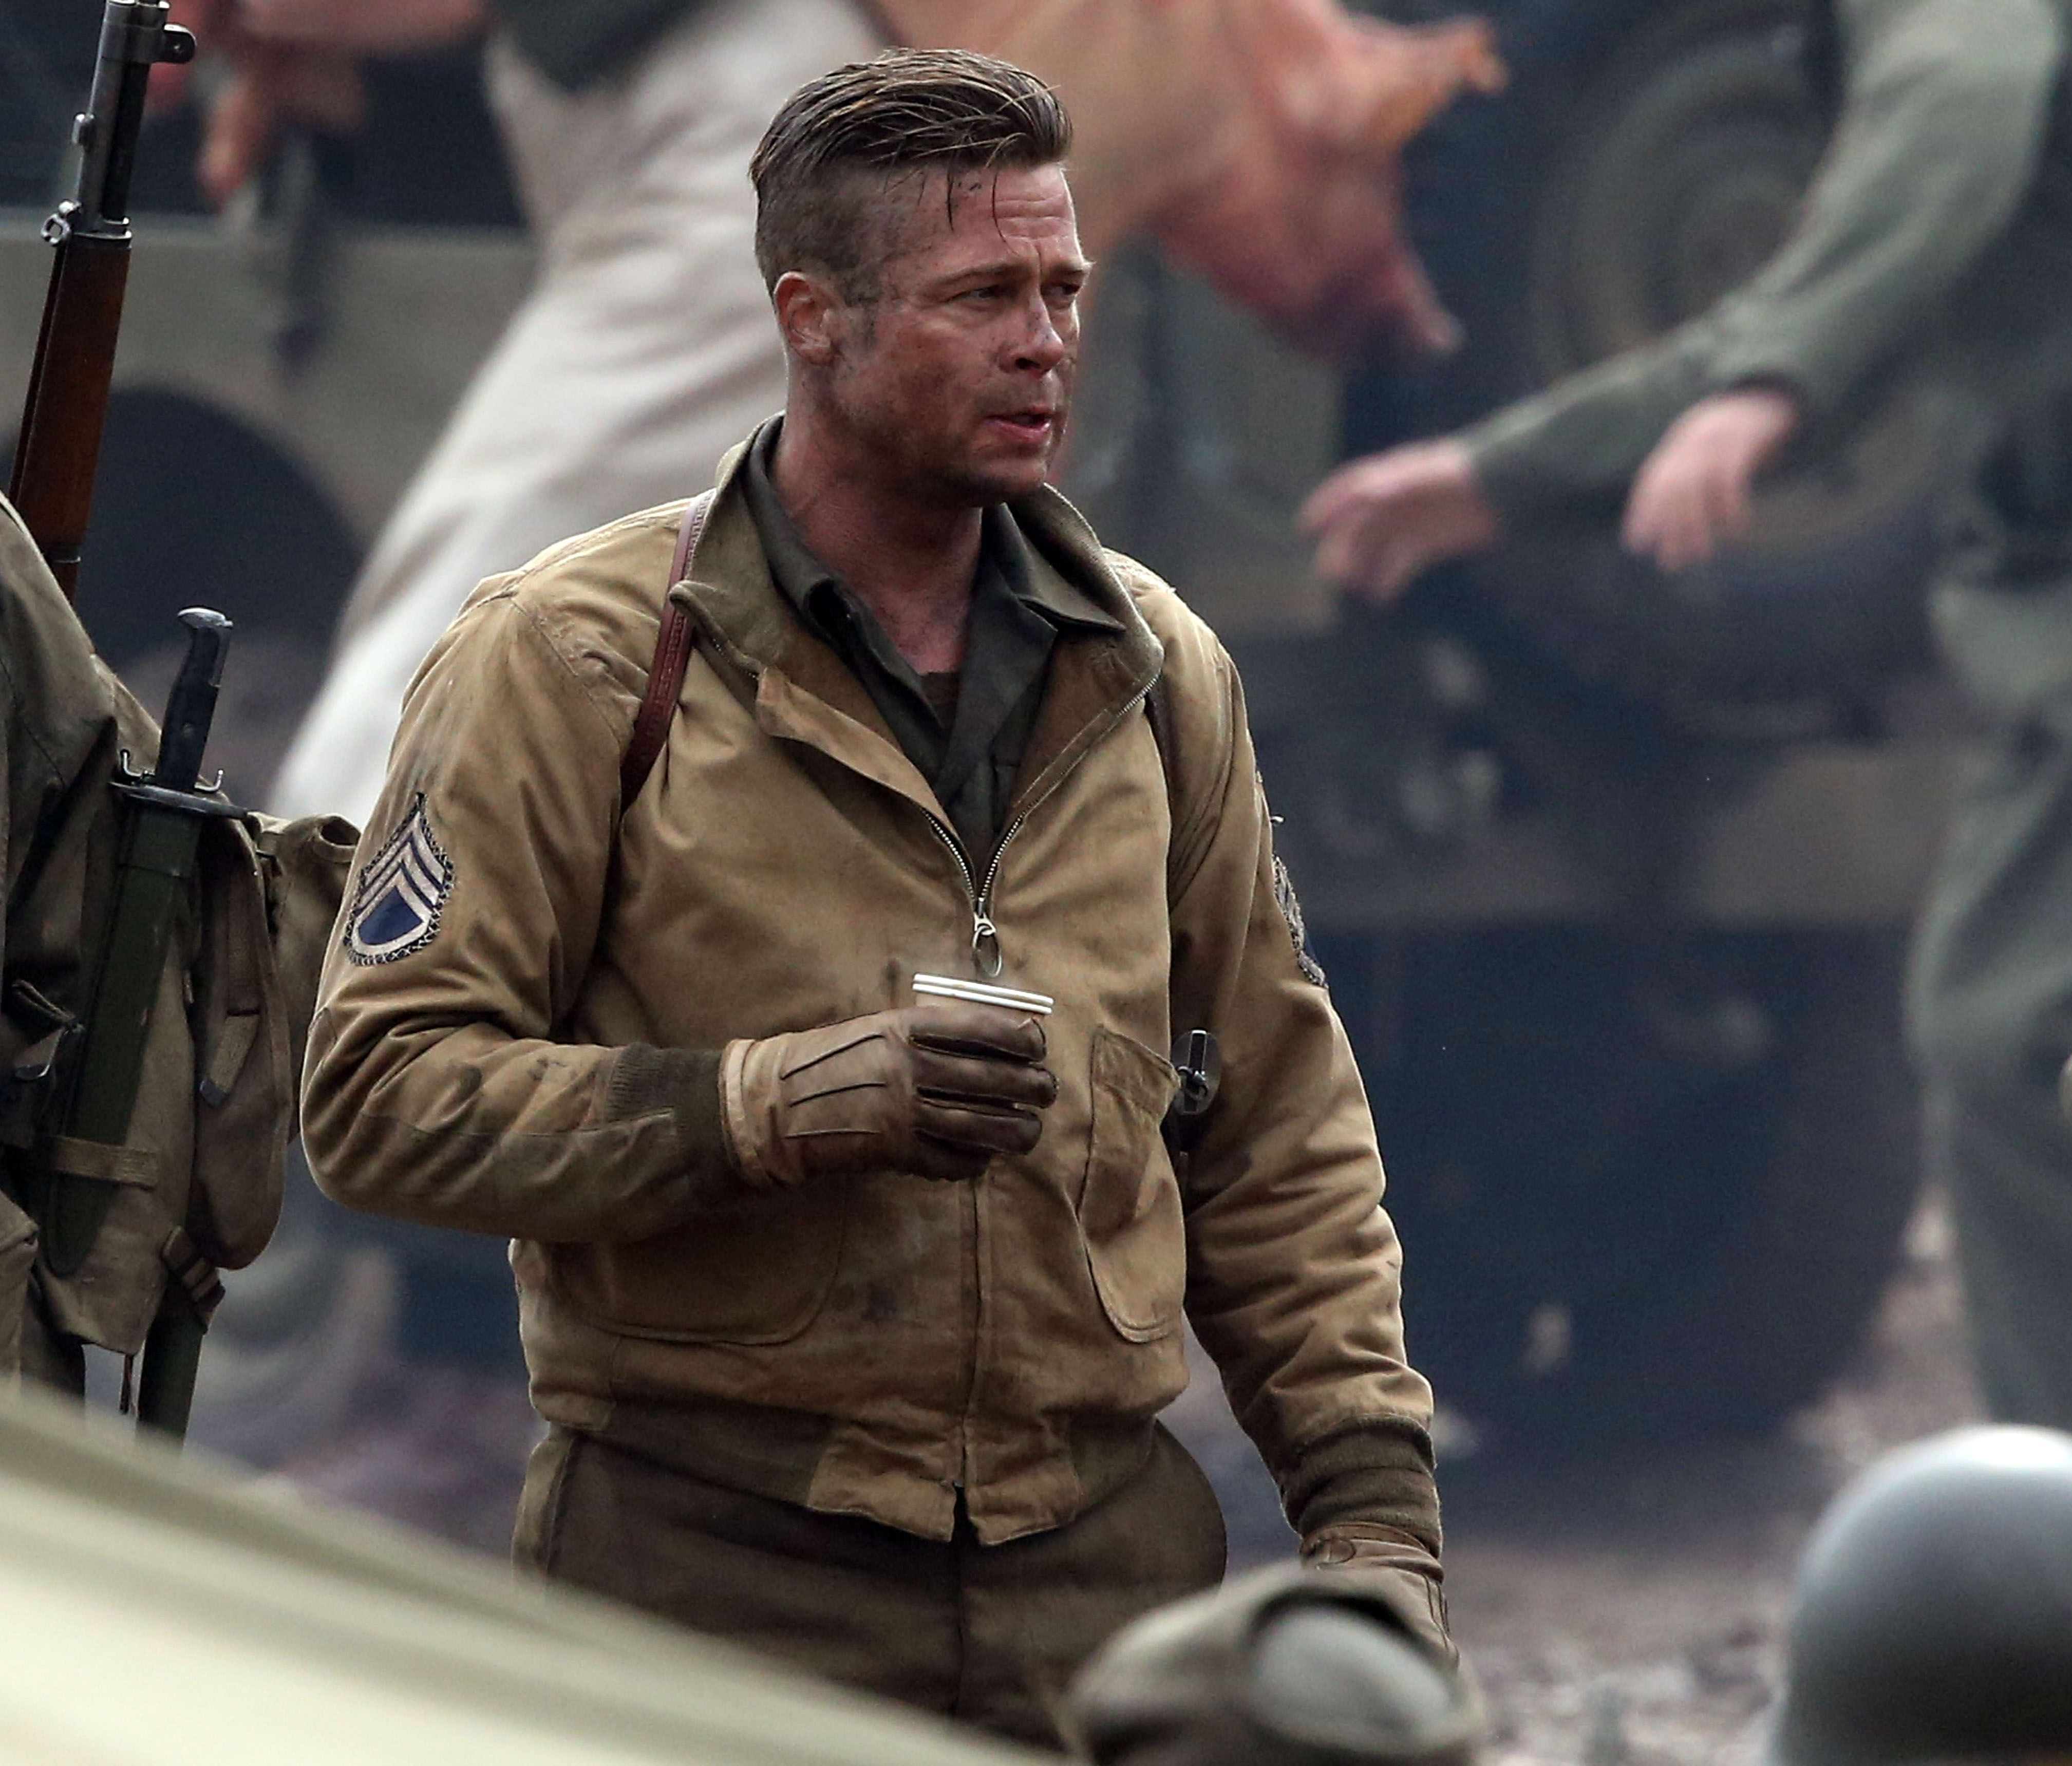 Brad Pitt on the set of Fury